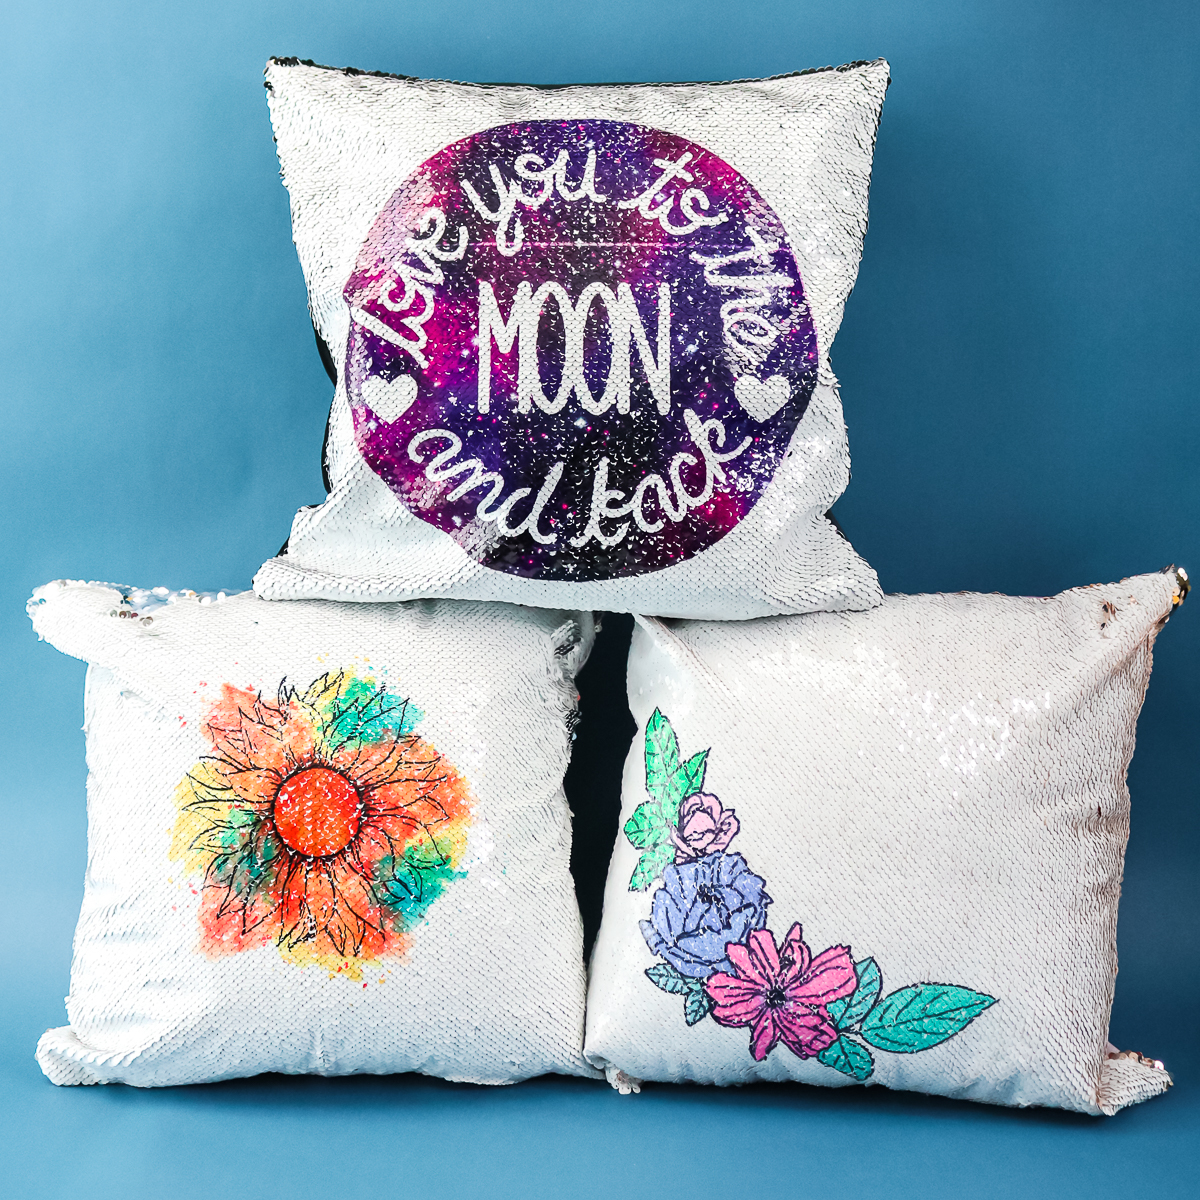 sublimation on sequins on pillow covers